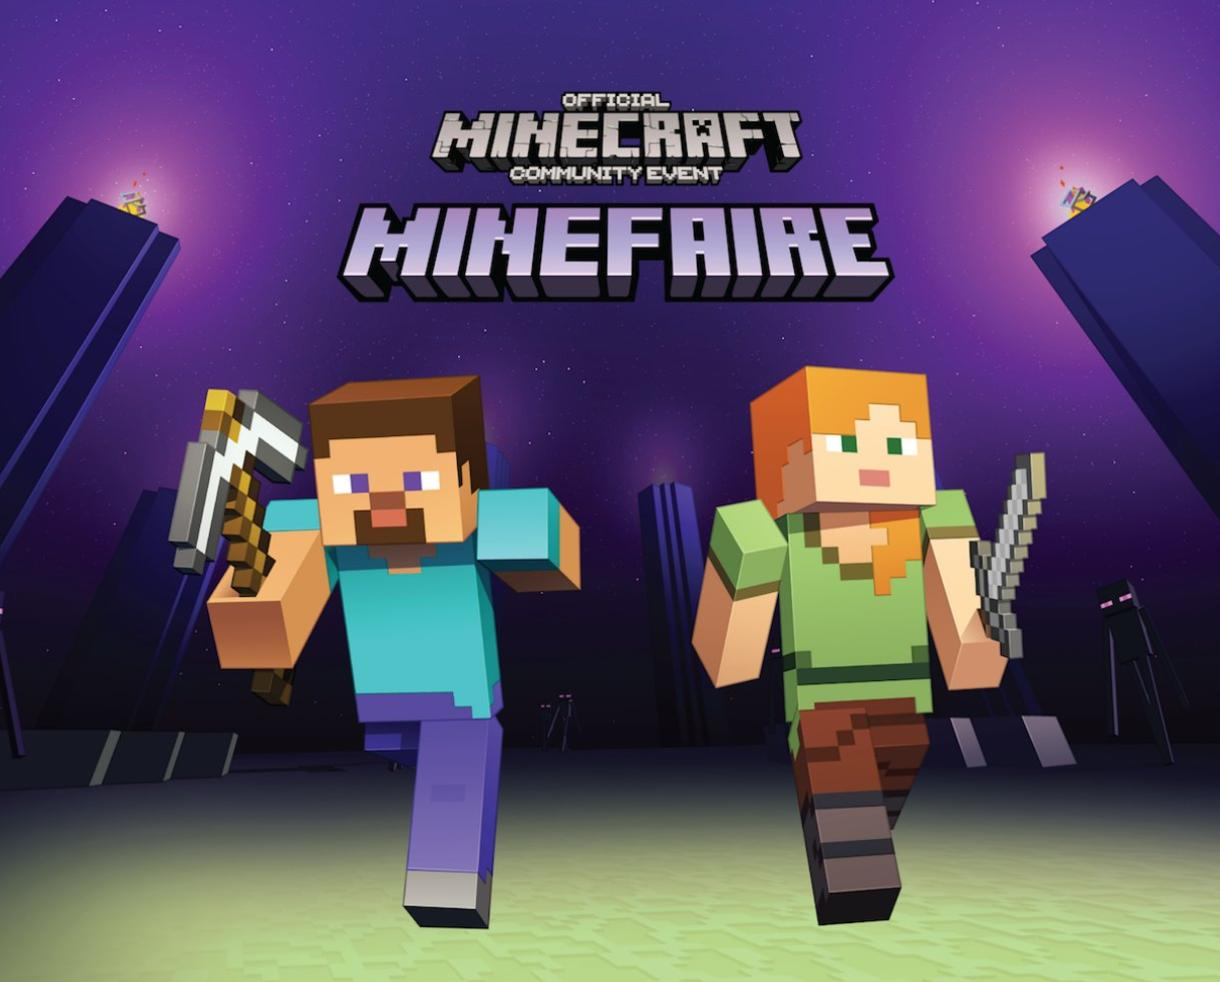 Up to 40% Off Minefaire Houston! $29.50 for Minefaire, a MINECRAFT® Fan Experience General Admission Ticket OR $44.50 for VIP Ticket - May 19-20, 2018 at NRG Center